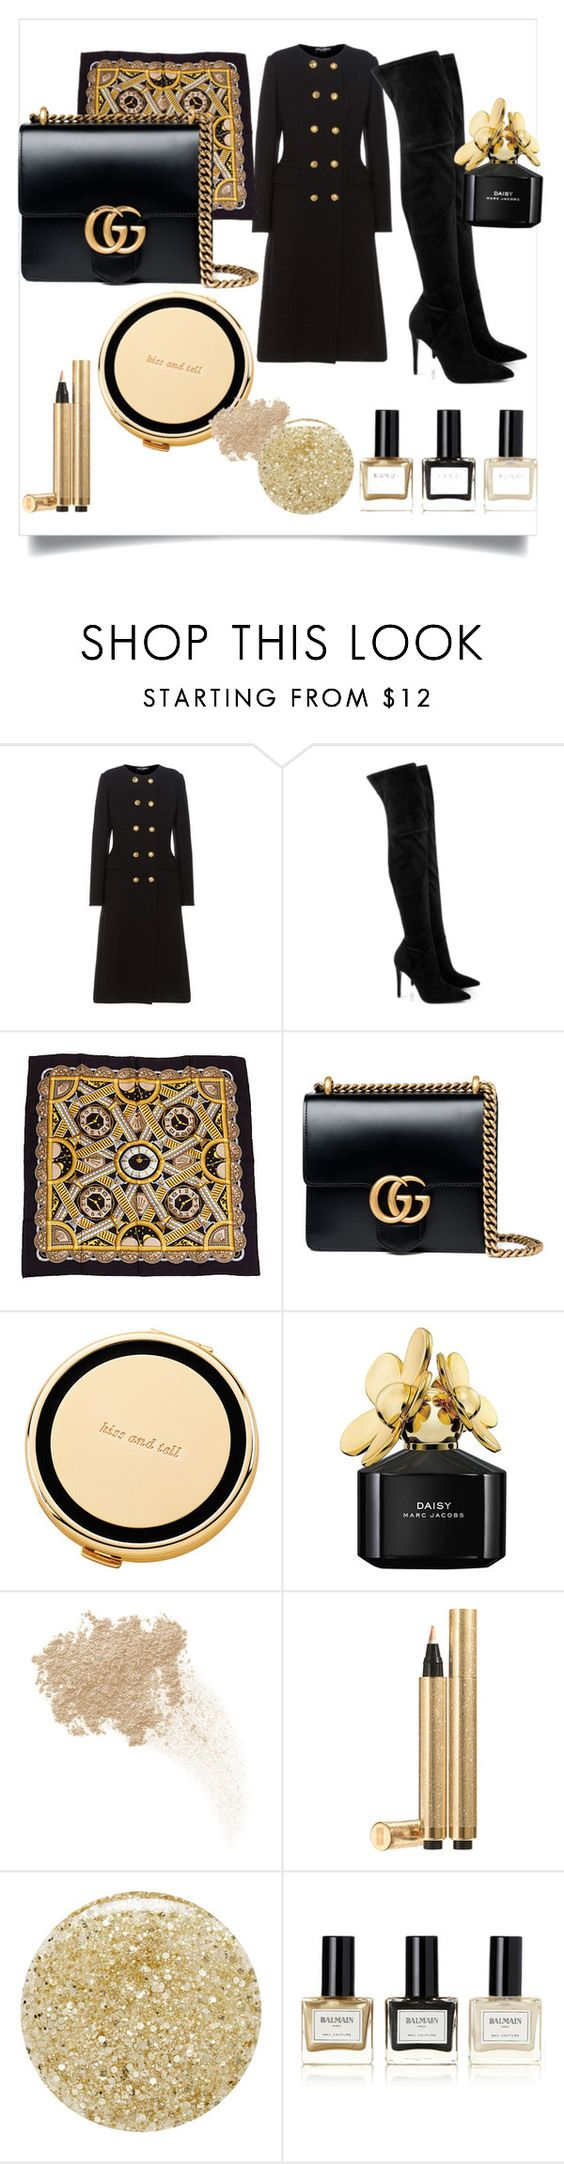 """""""Hello autumn!"""" by styleociety ❤ liked on Polyvore featuring Dolce&Gabbana, Kendall + Kylie, Gucci, Kate Spade, Marc Jacobs, W3LL People, Yves Saint Laurent, Lancôme and Balmain"""